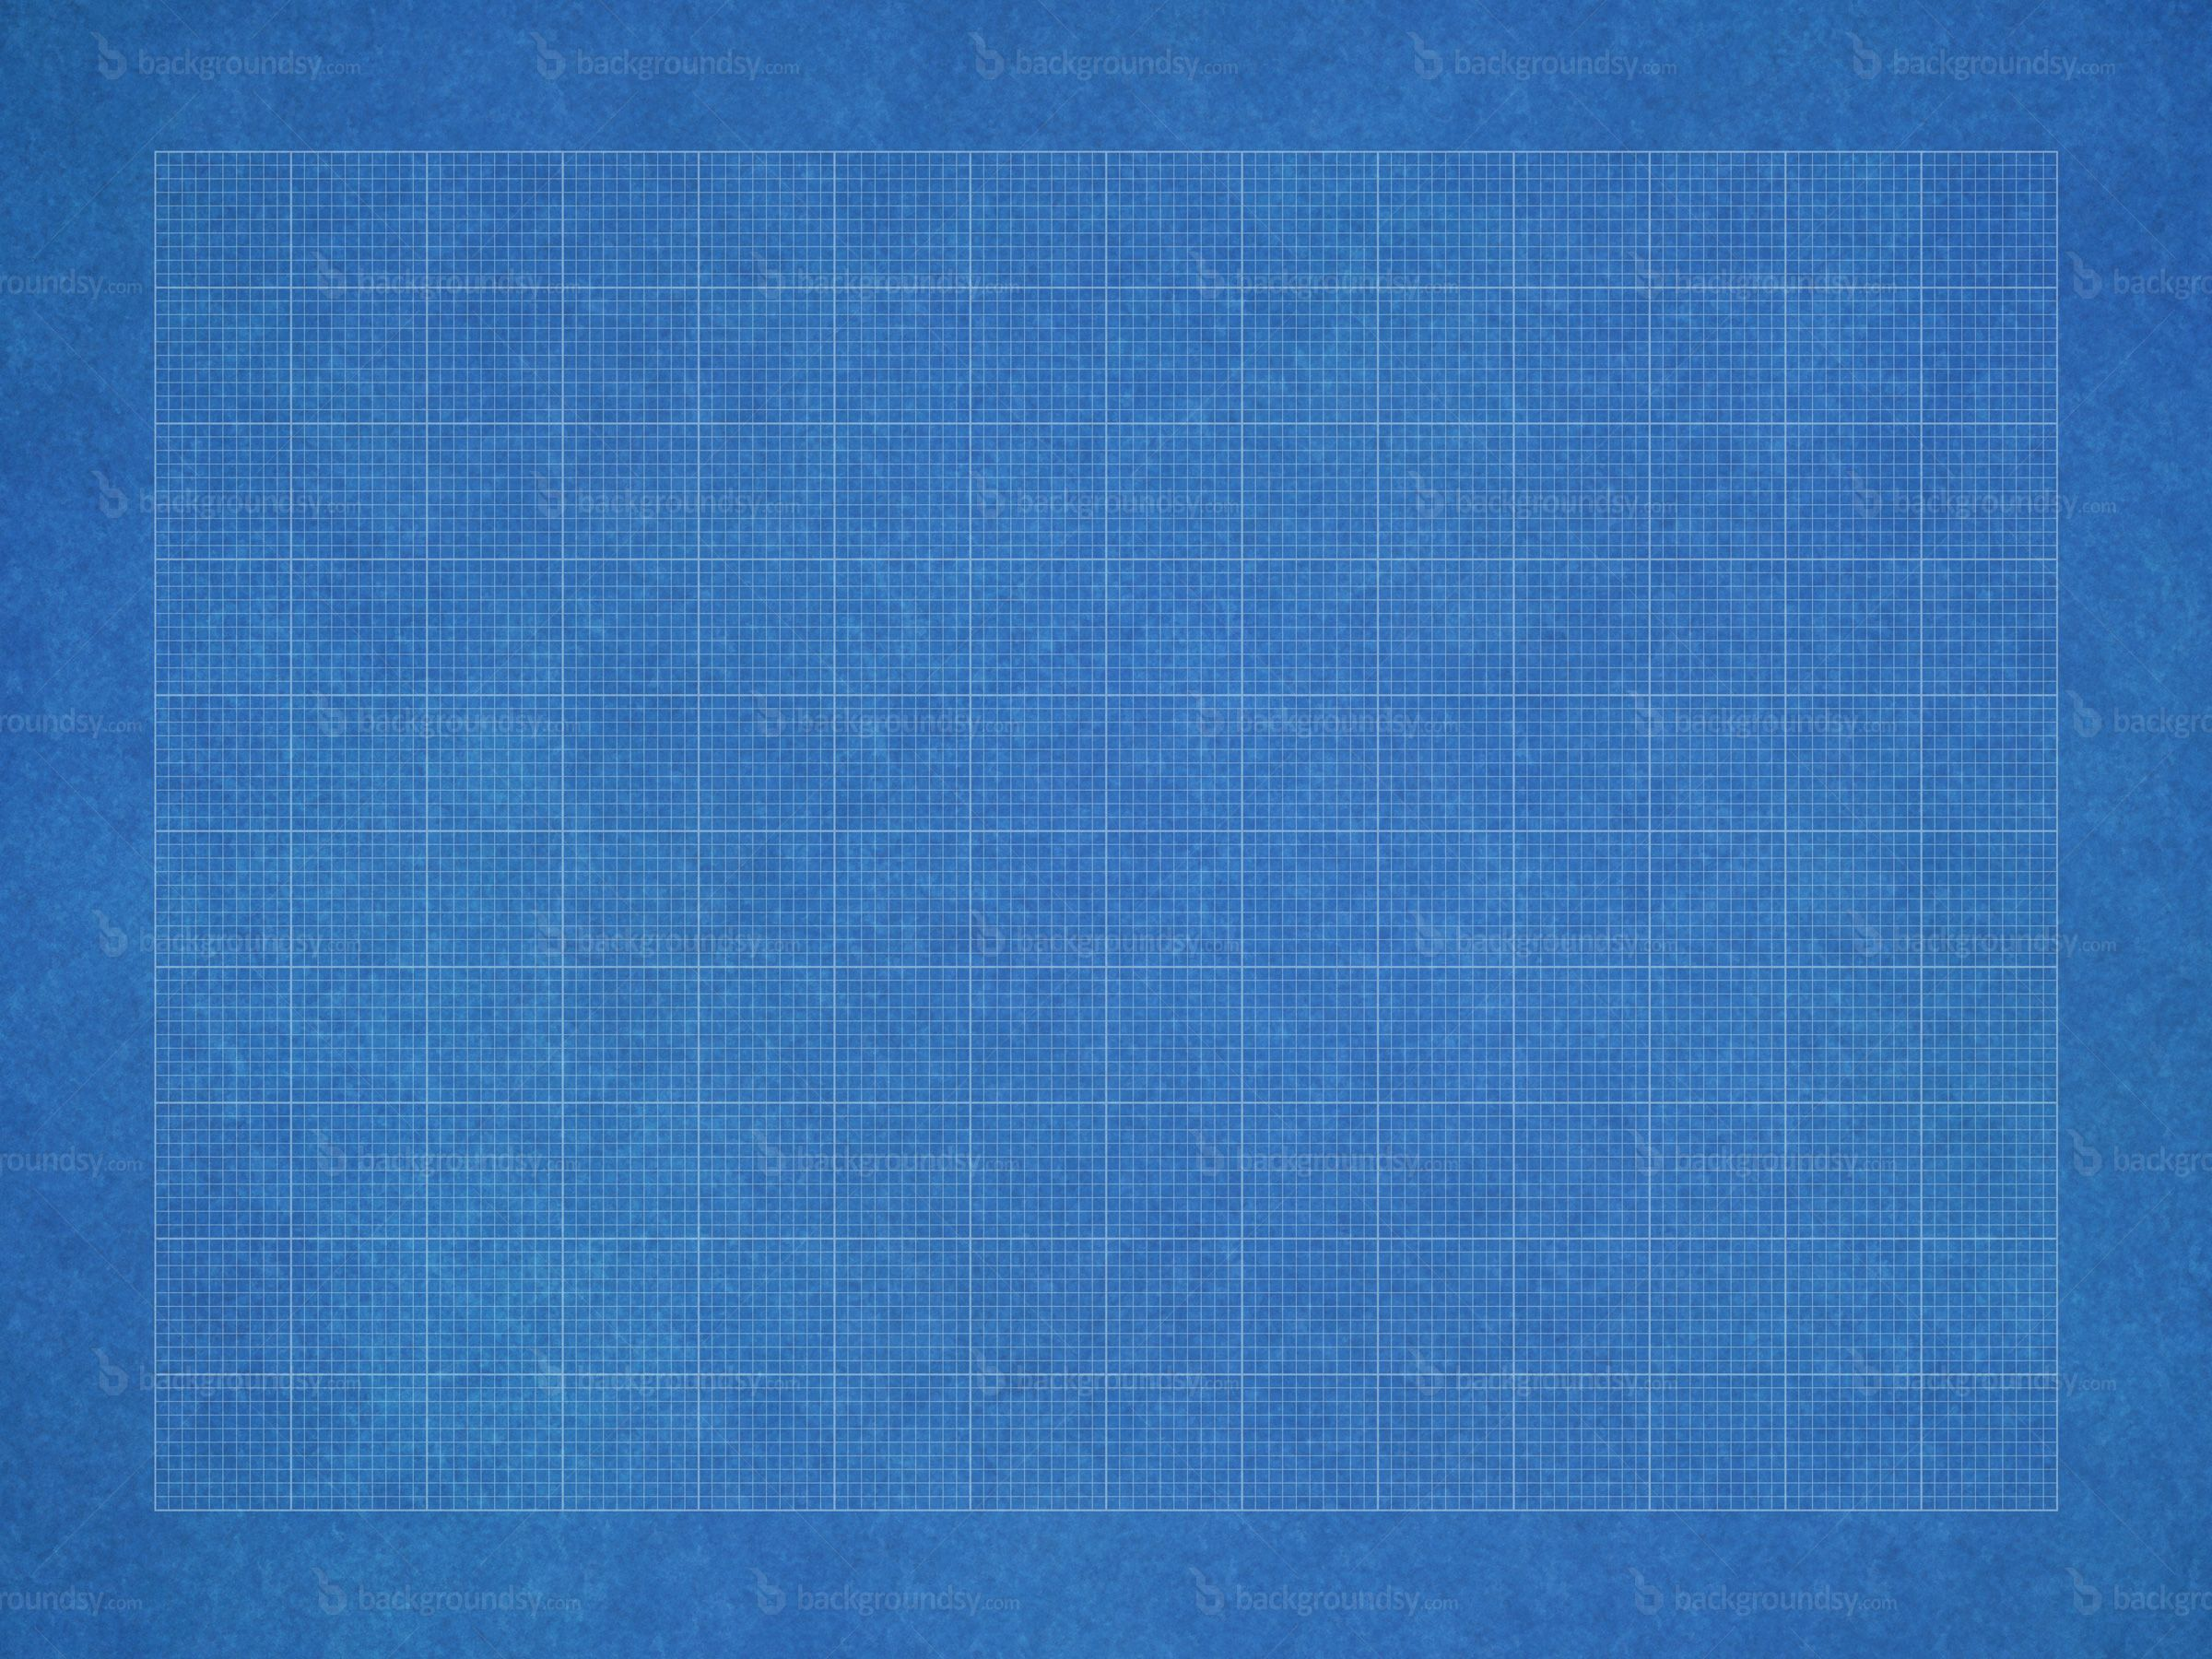 Blueprint grid 2400 1800 plex mood board for Where to buy blueprint paper